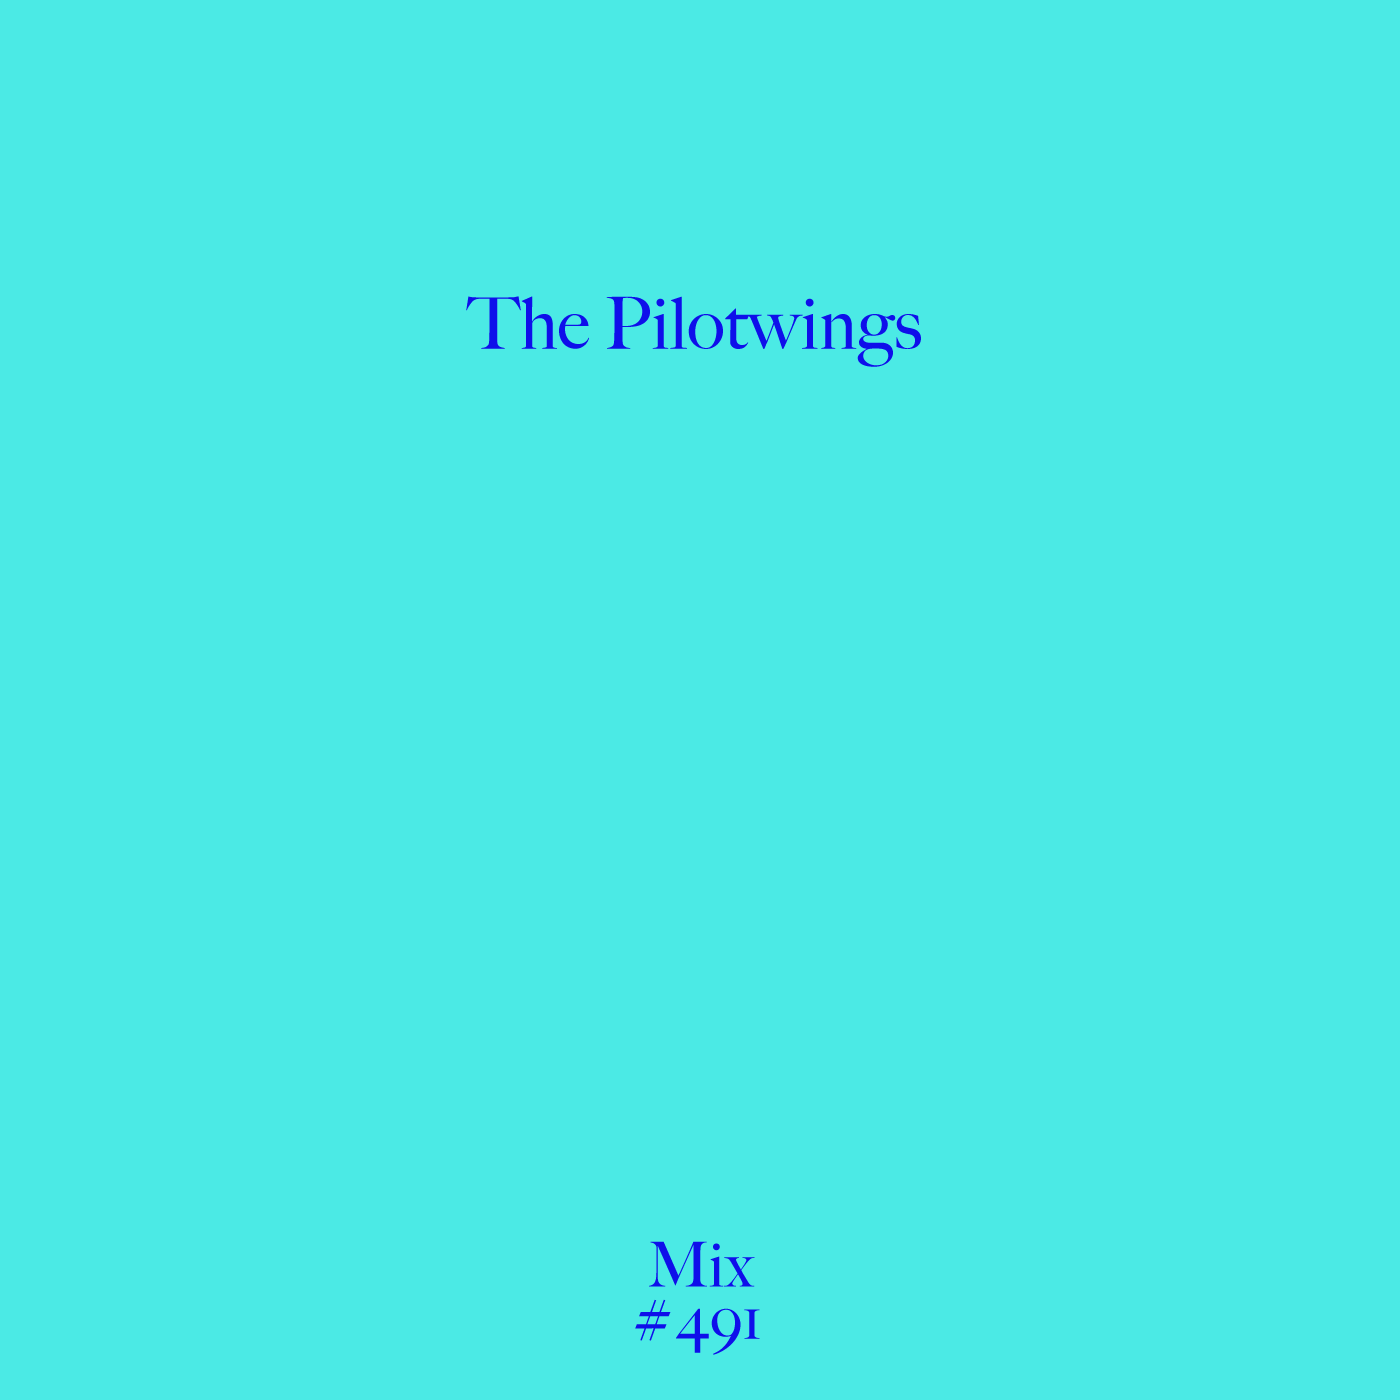 The Pilotwings, Mix, Test Pressing, Balearic Sound, Summer, 2019